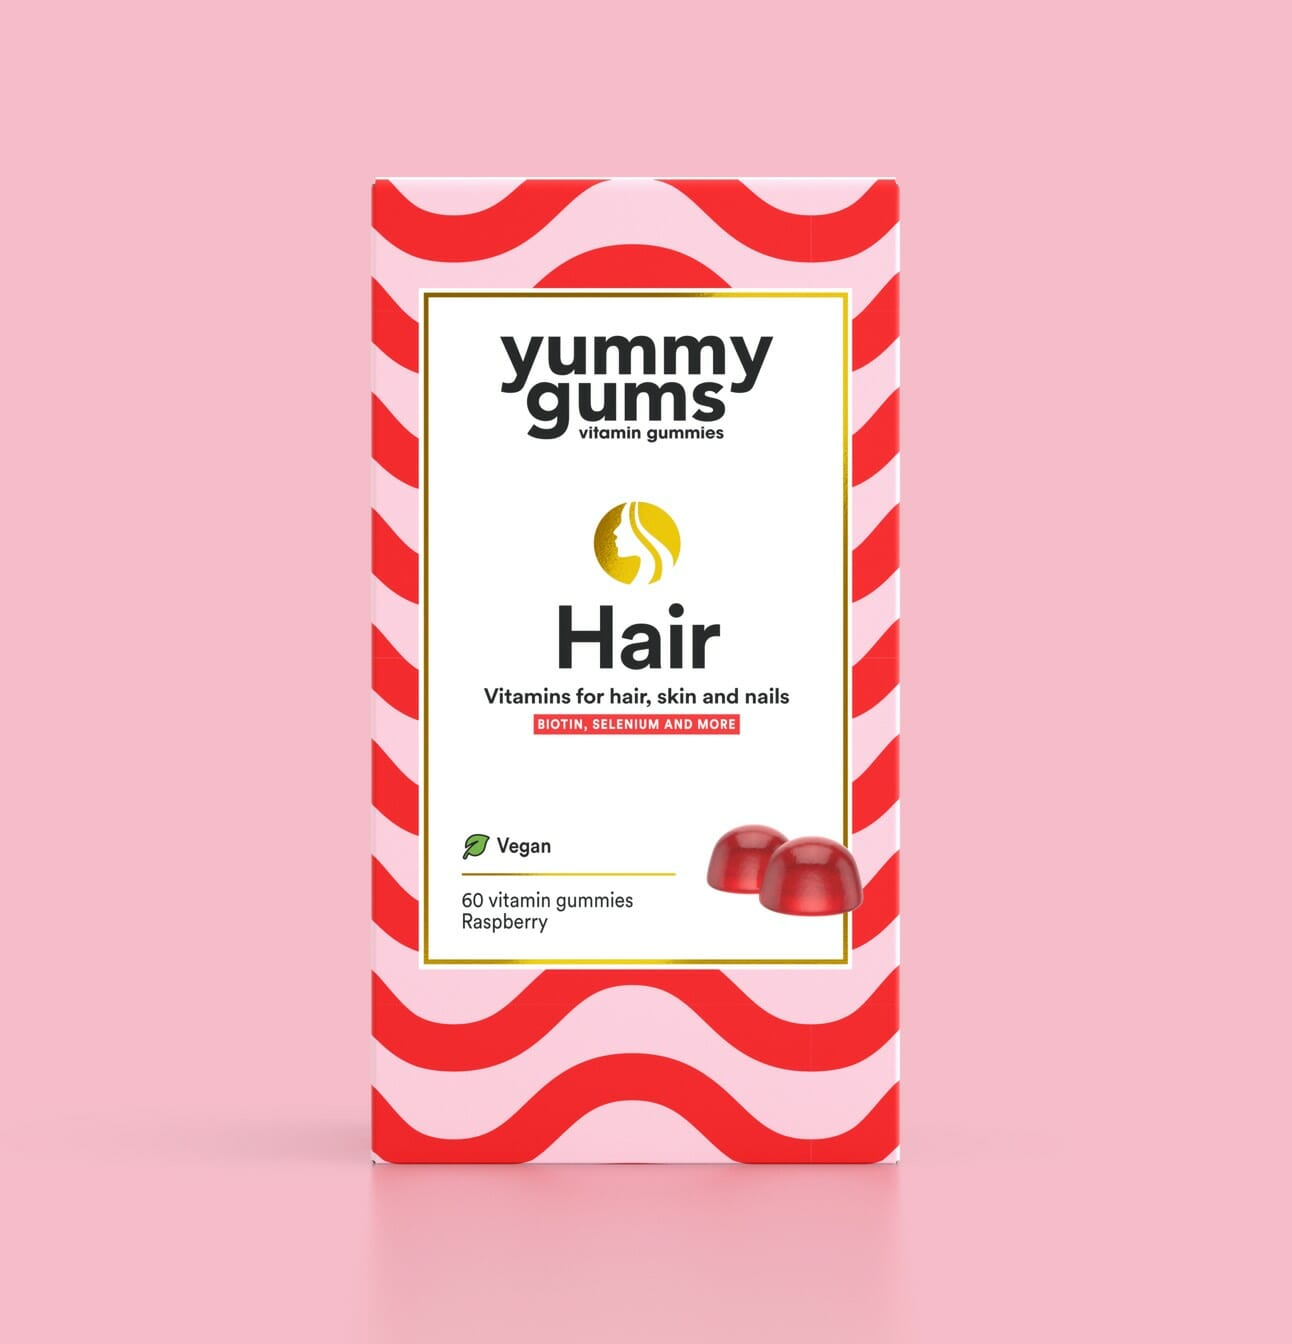 Buy hair vitamins - Buy vegan vitamin - Natural vitamins - Yummygums Hair & Beauty